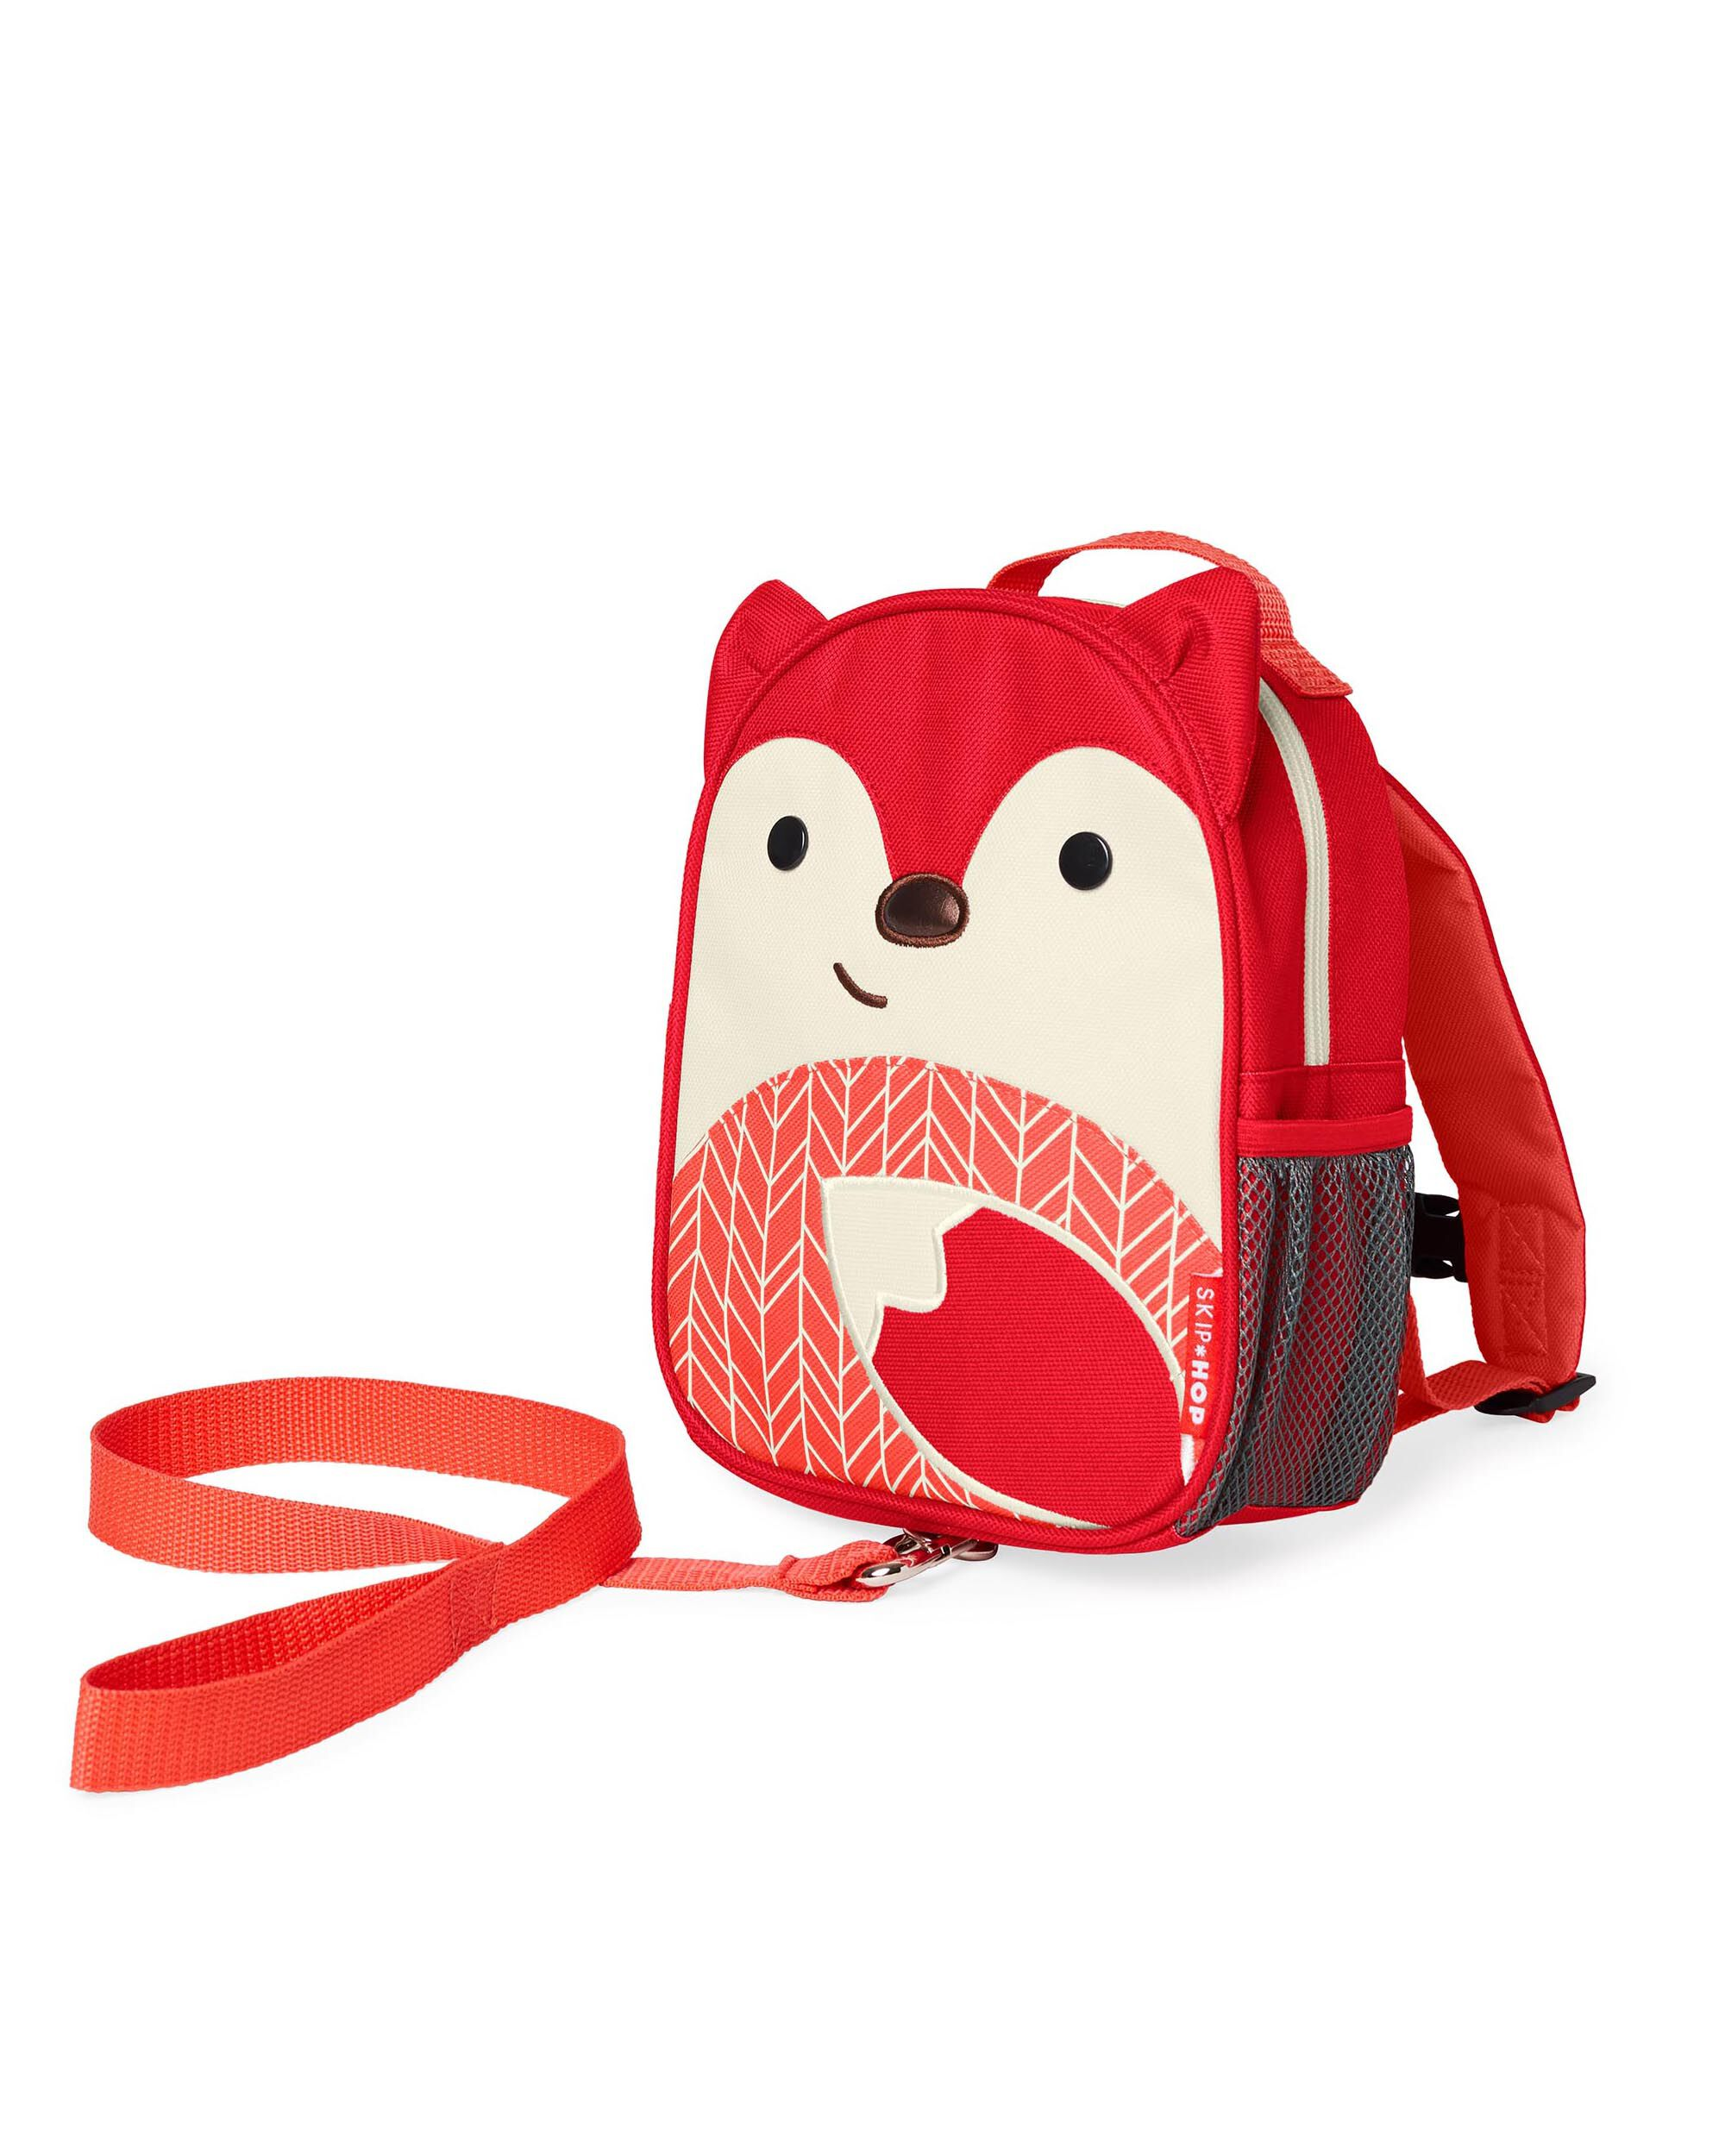 Oshkoshbgosh Zoo Safety Harness Backpack